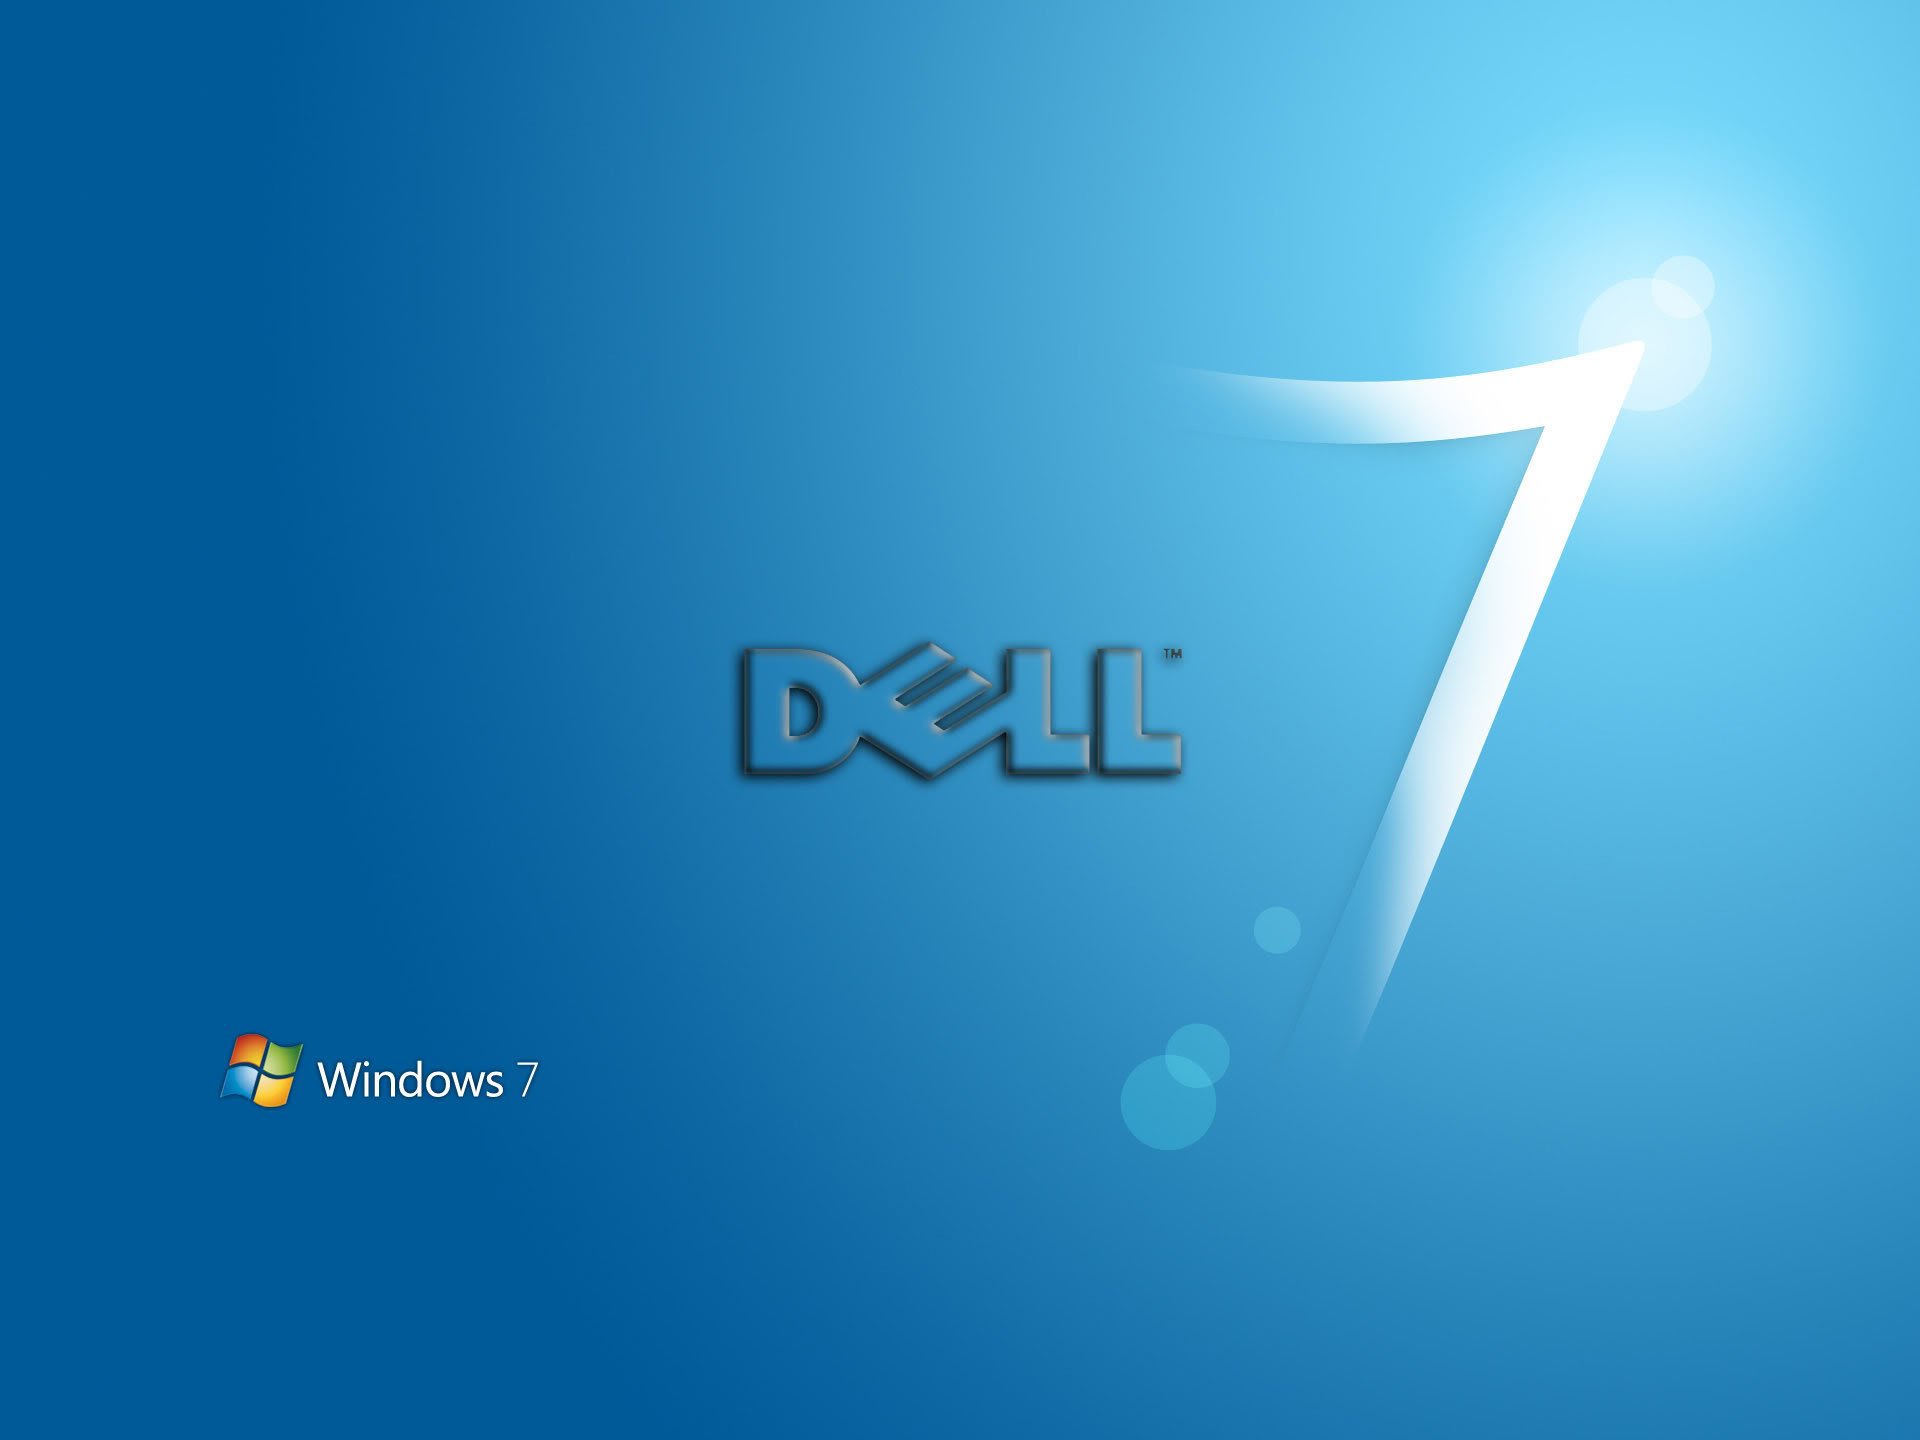 1920x1440 ( px #KGN 3482) Wallpaper for Dell HD